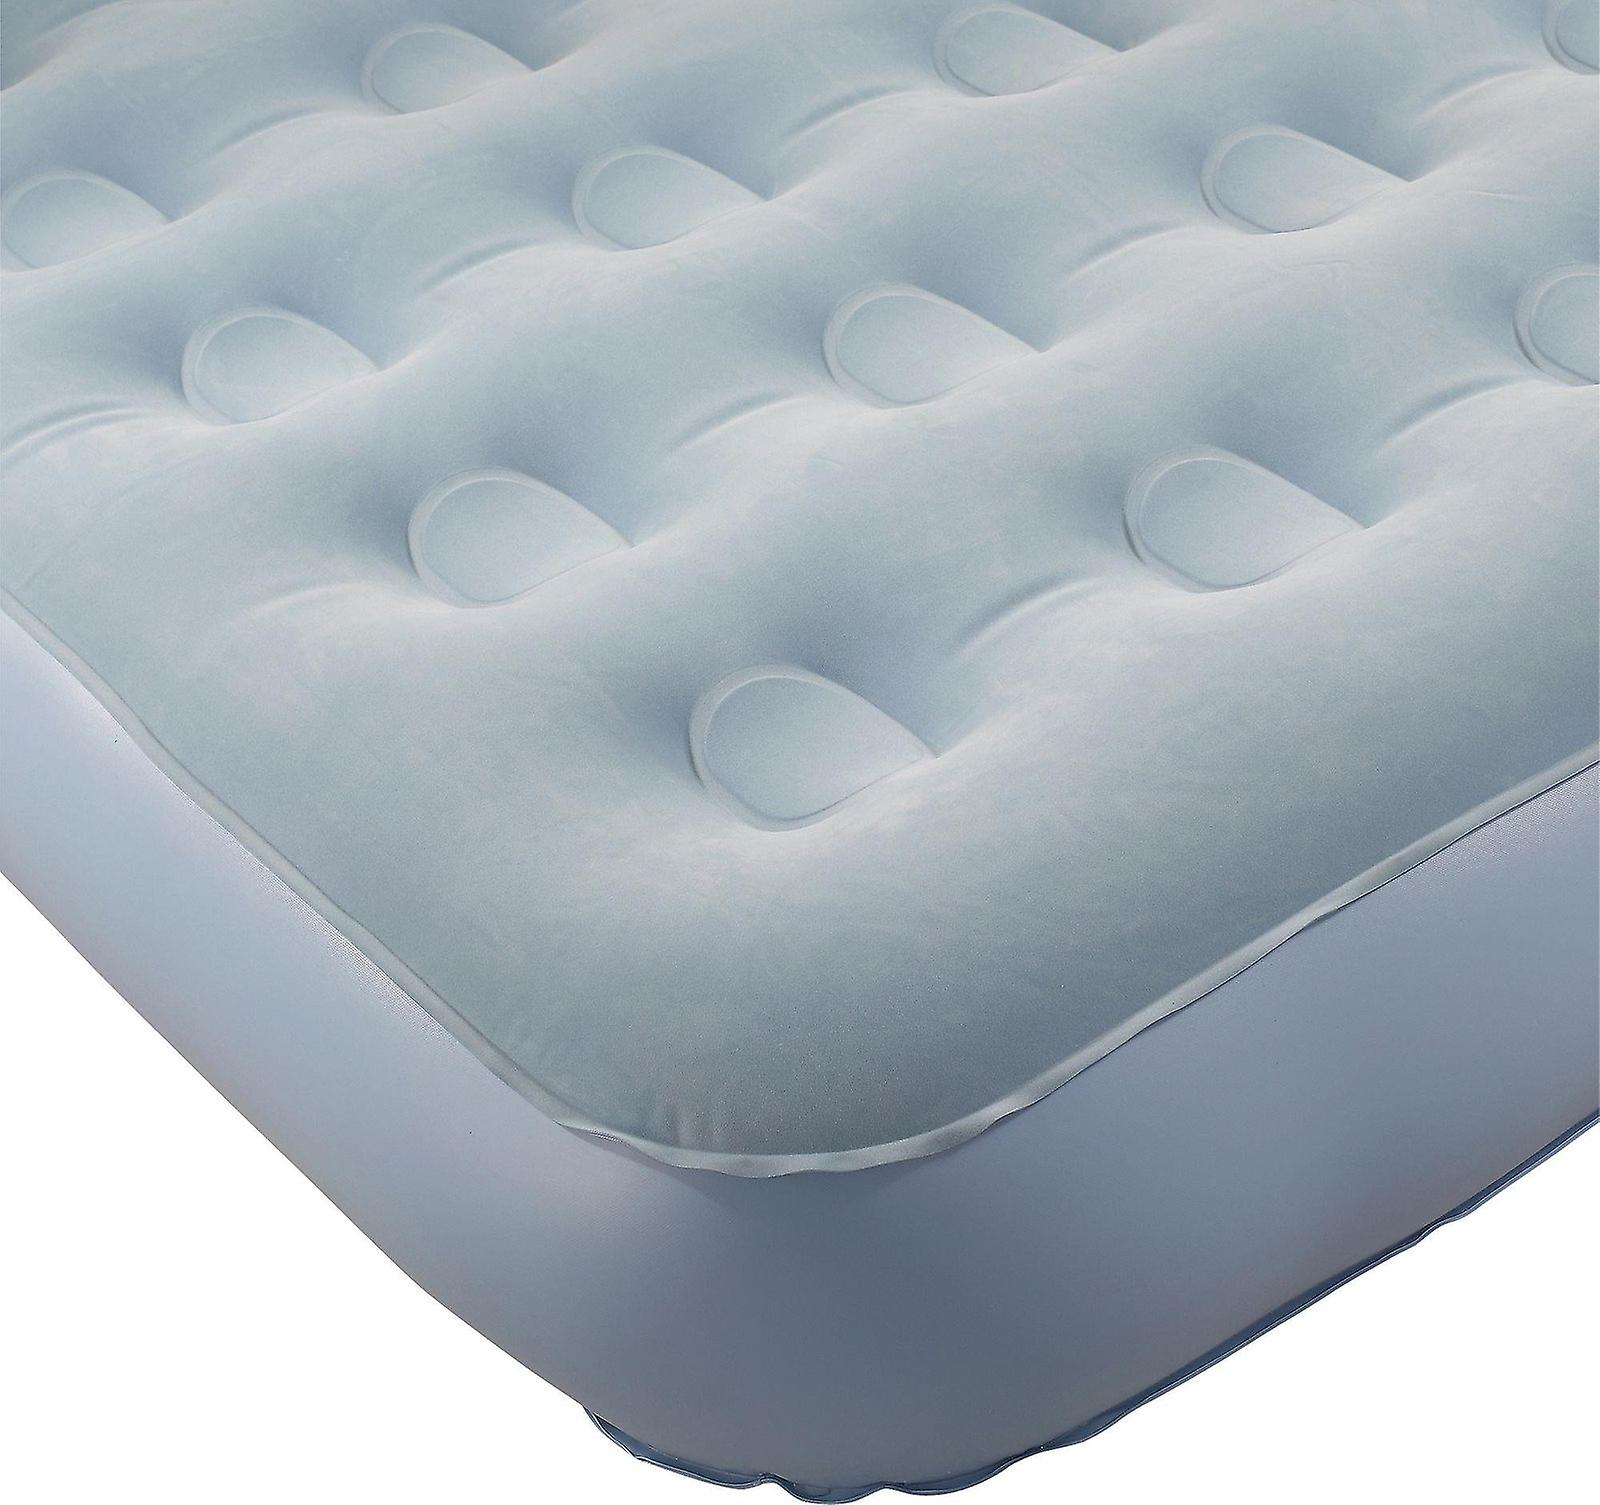 Aerobed Single Airbed Self Inflating Built in Electric Pump 1 Year Guarantee